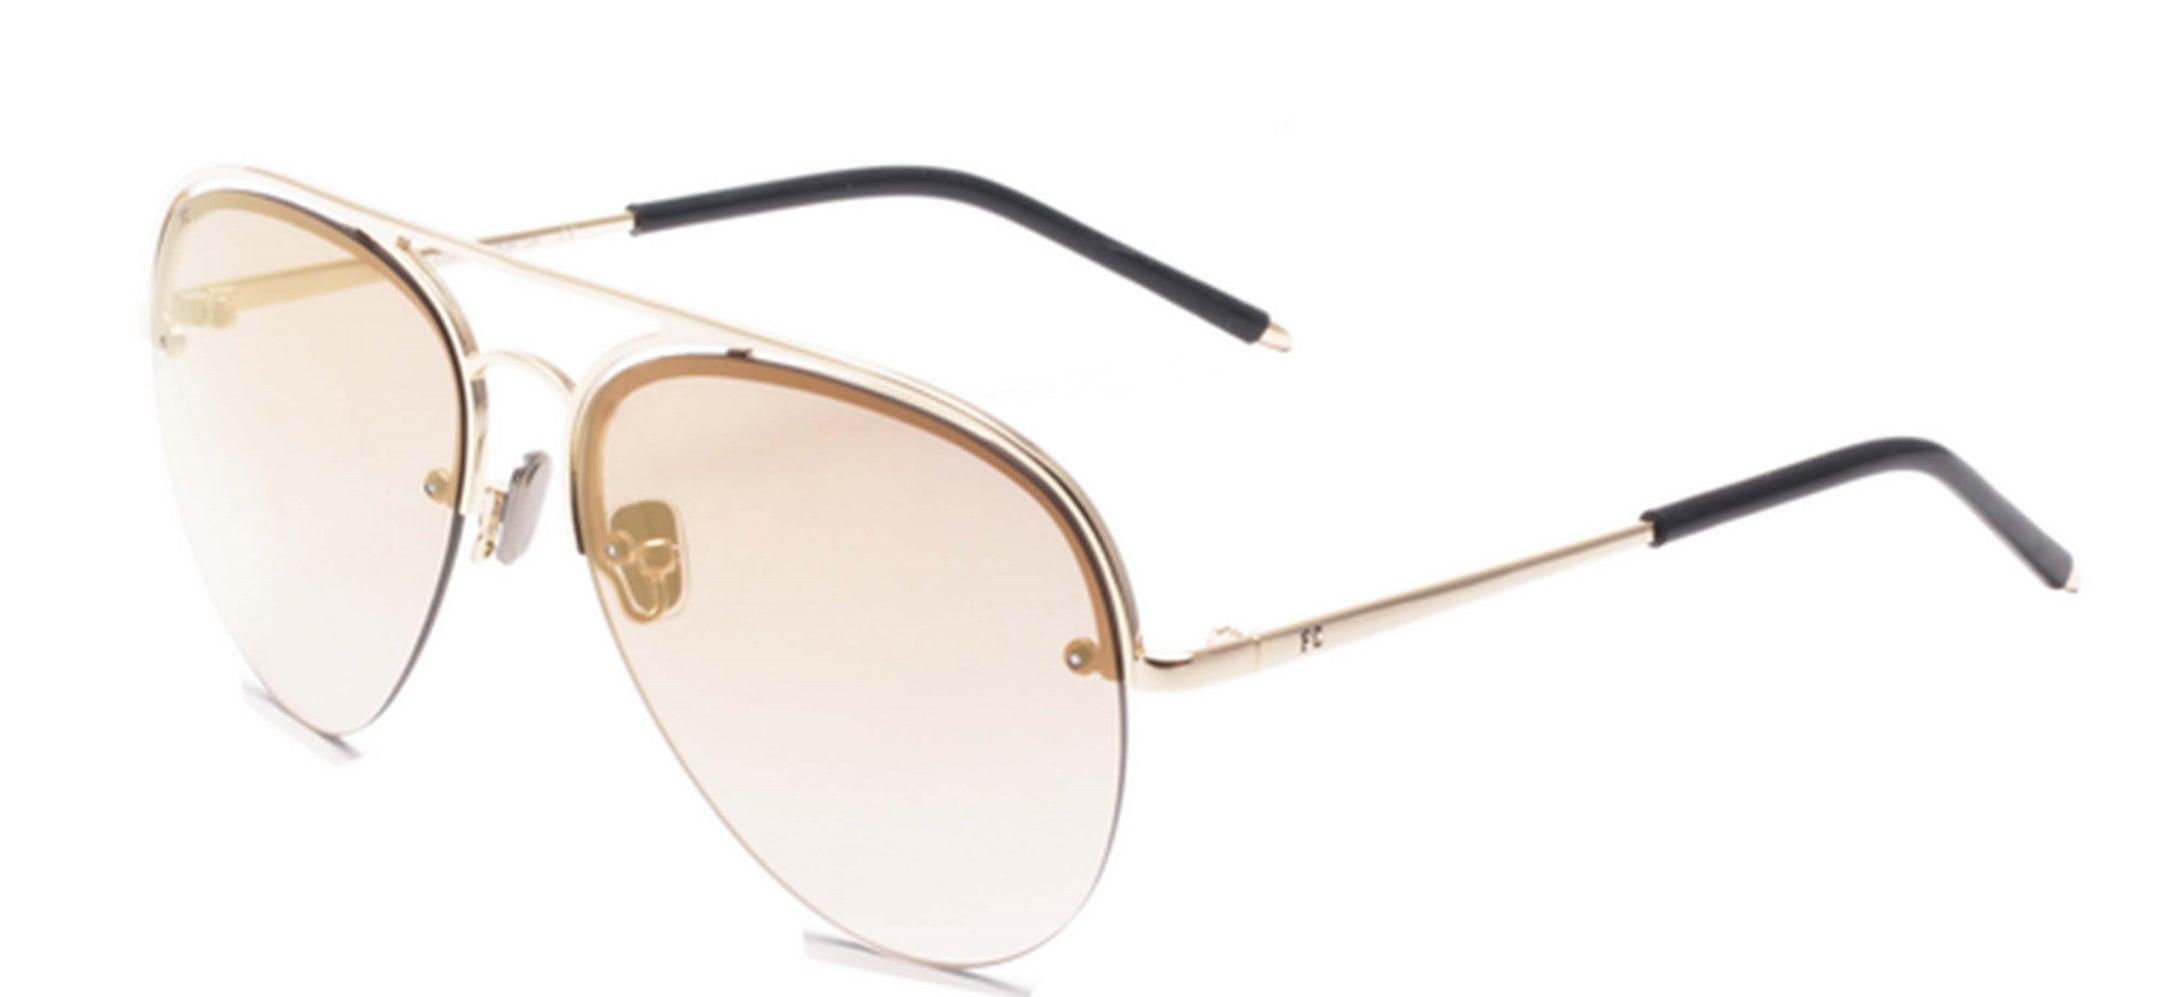 French Connection FC-7400-C1 Gold Aviator Sunglasses